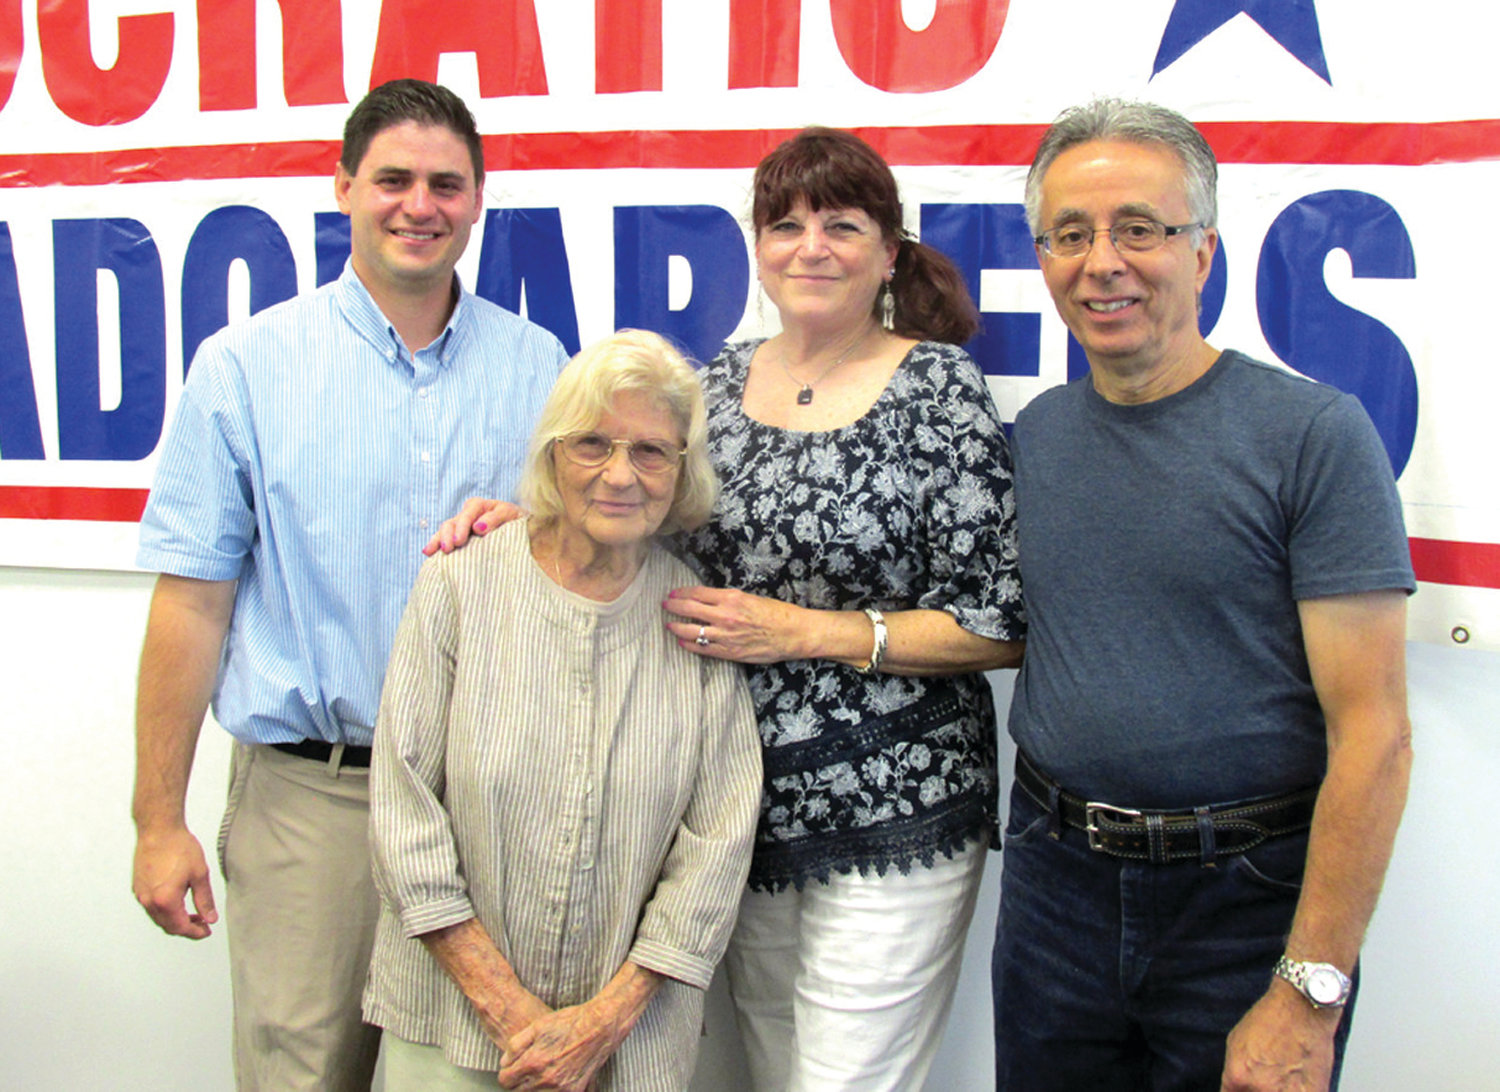 AWESOME ADVISOR: People like former District I Councilman Richard J. DelFino III (left) current Councilwoman Linda Folcarelli and School Committee Chairman Robert LaFazia all benefited from the mentorship of Mary Cerra.